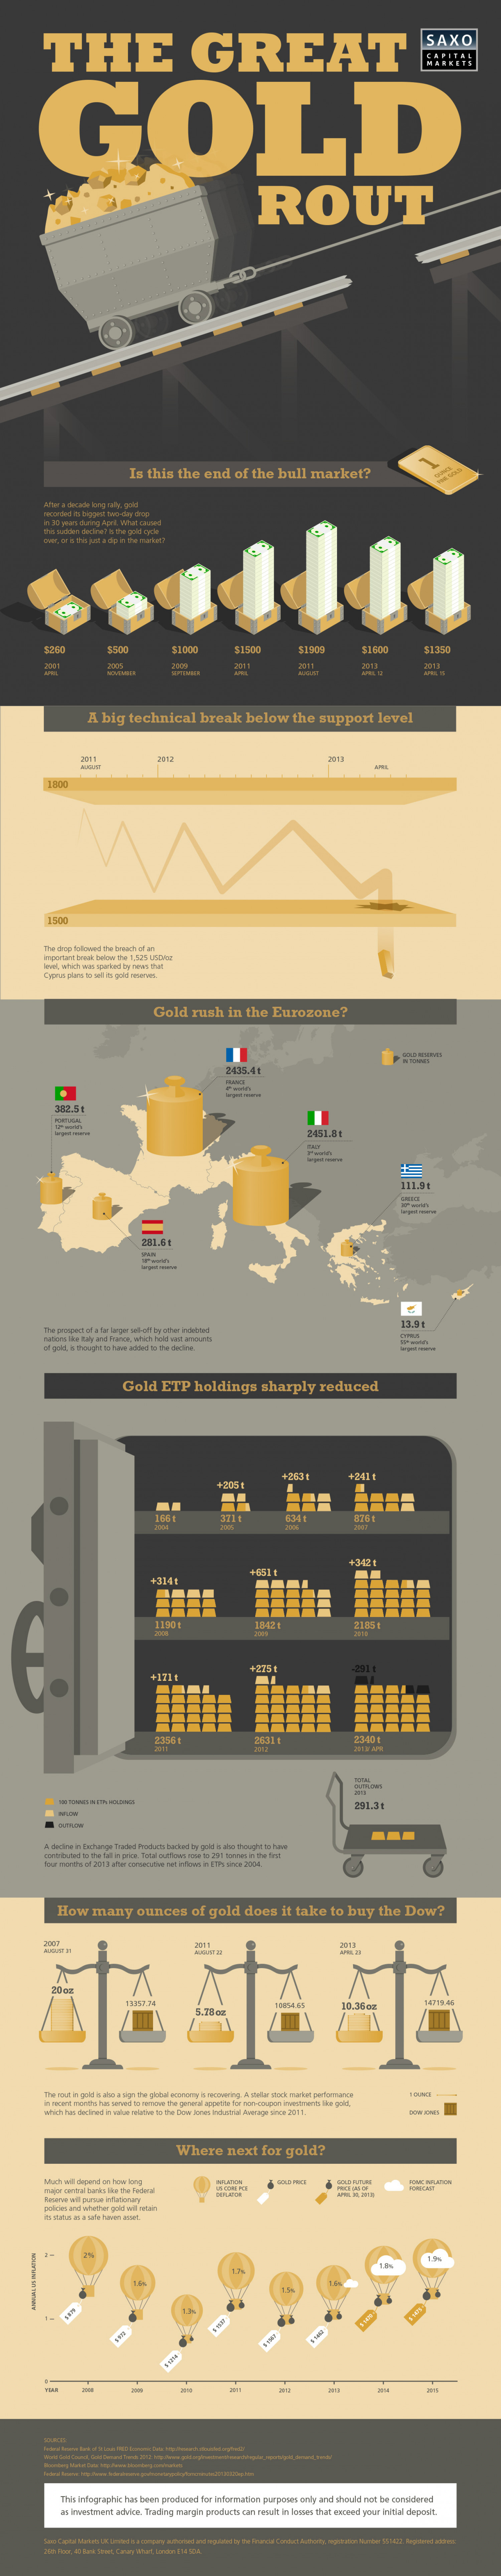 The Great Gold Rout Infographic